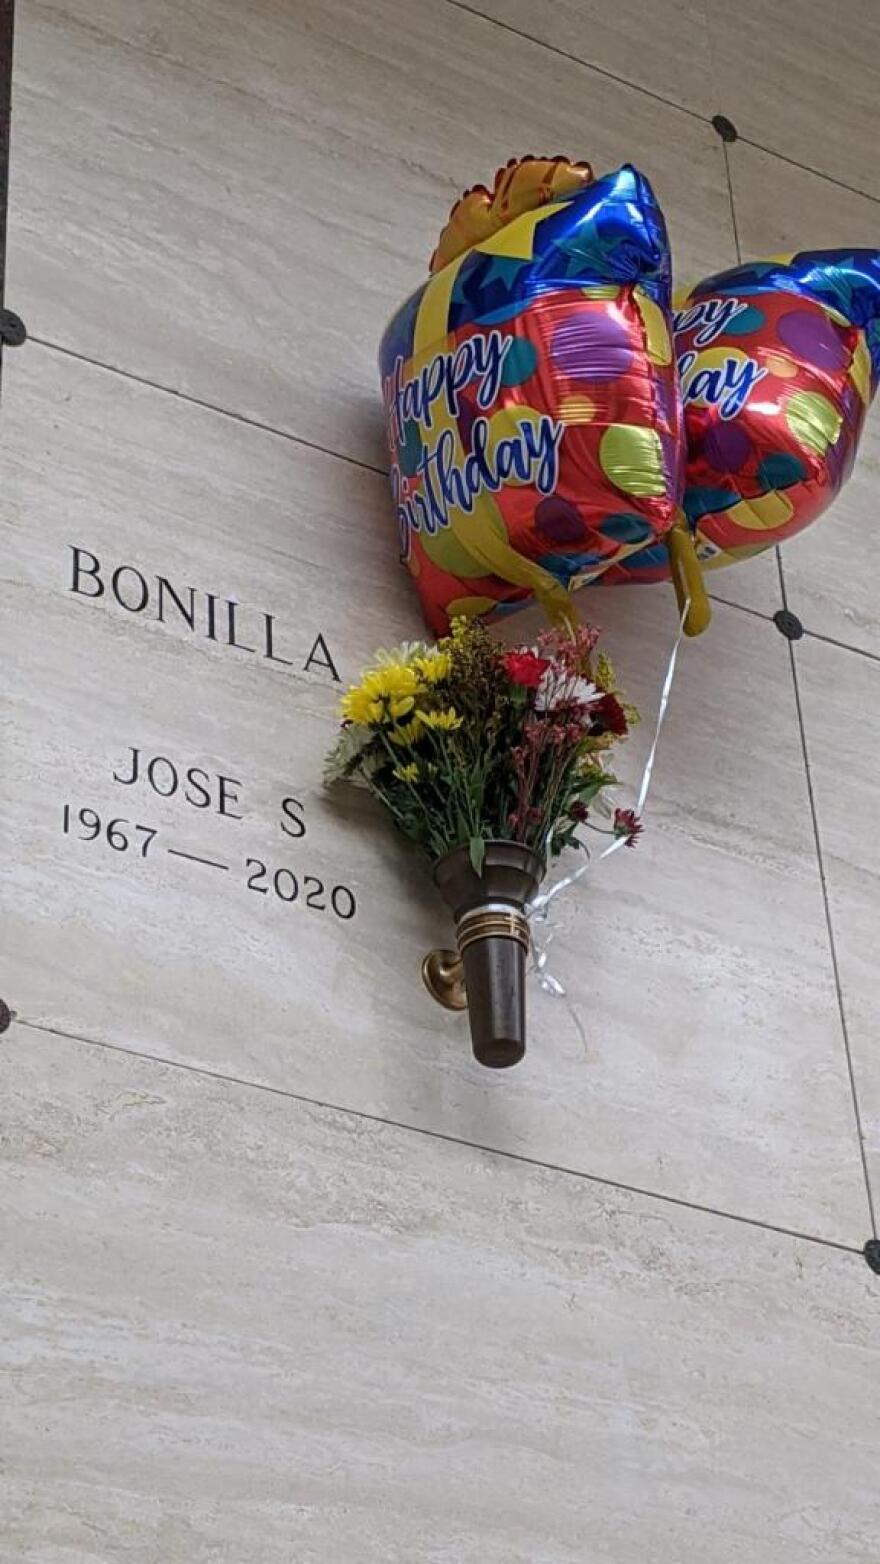 Jose Bonilla's family visits his grave for his birthday on Nov. 28, two days after Thanksgiving. Bonilla died in July from complications with COVID-19.